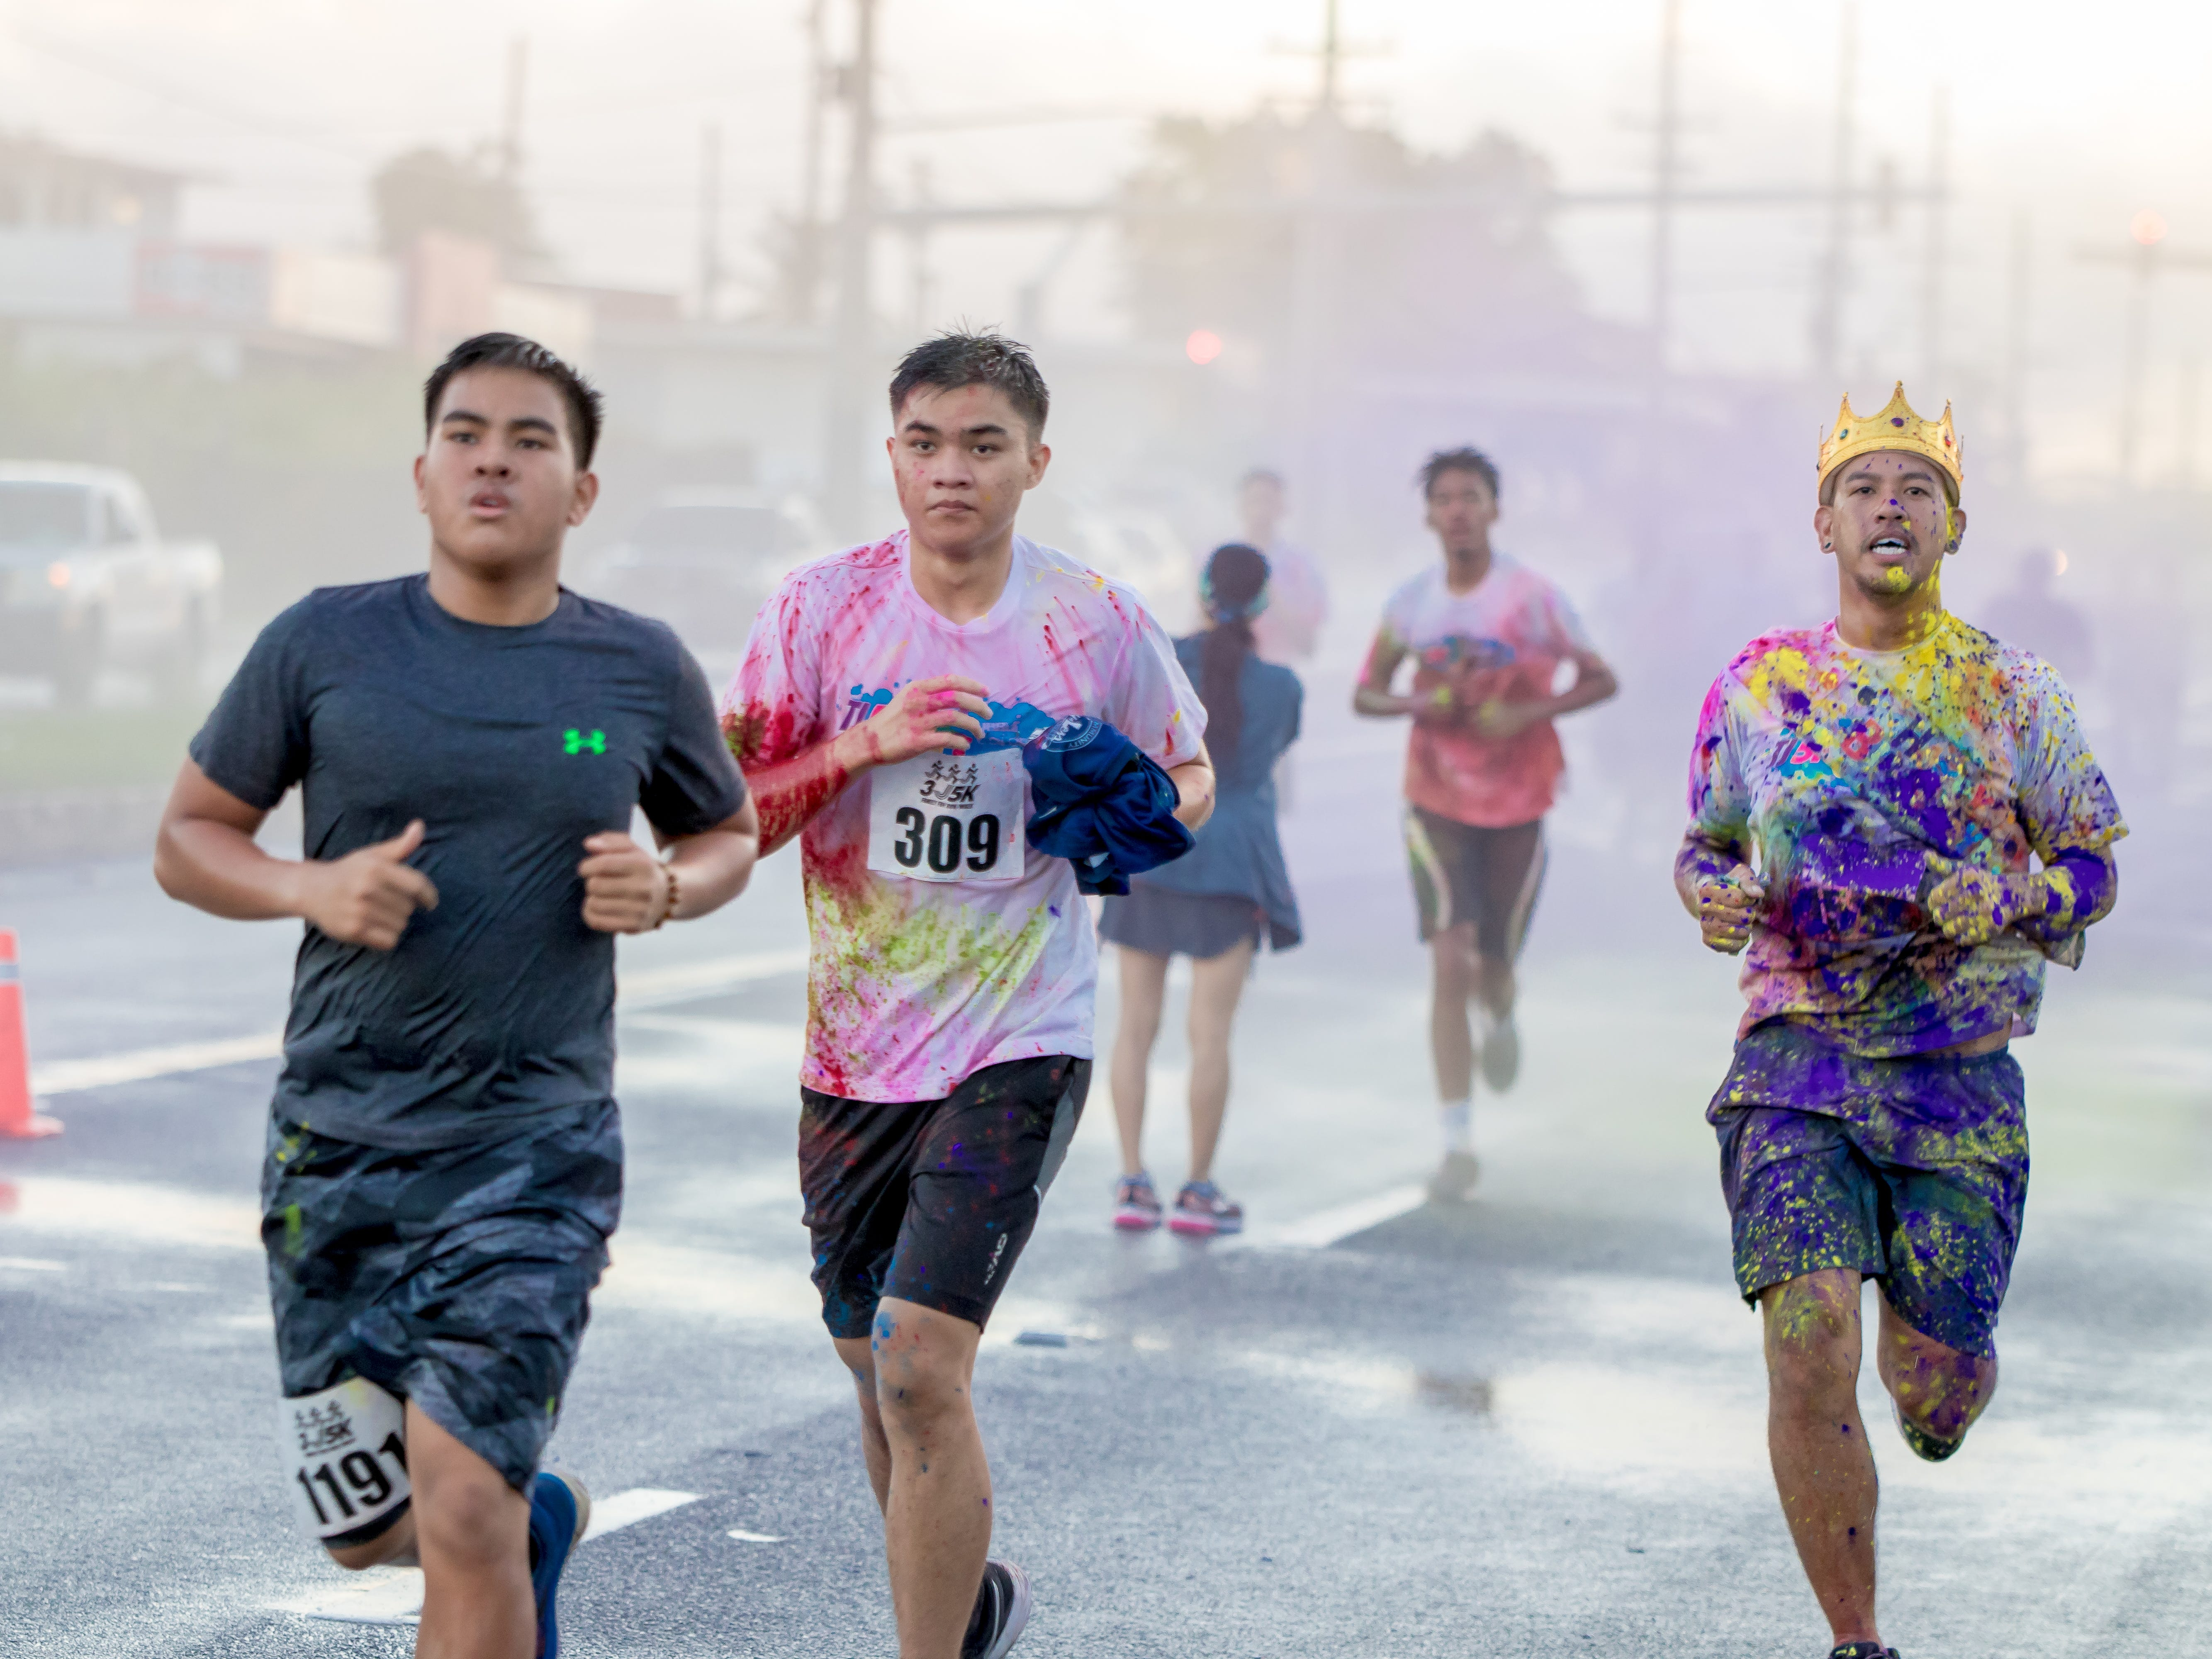 """Participants gets colorful as colored power is splashed as they proceed the finish line during the 13th Annual Triple J Family 10K/5K Run themed the """"Bubble Color Run.""""Virgilio Valencia /For Pacific Daily News"""